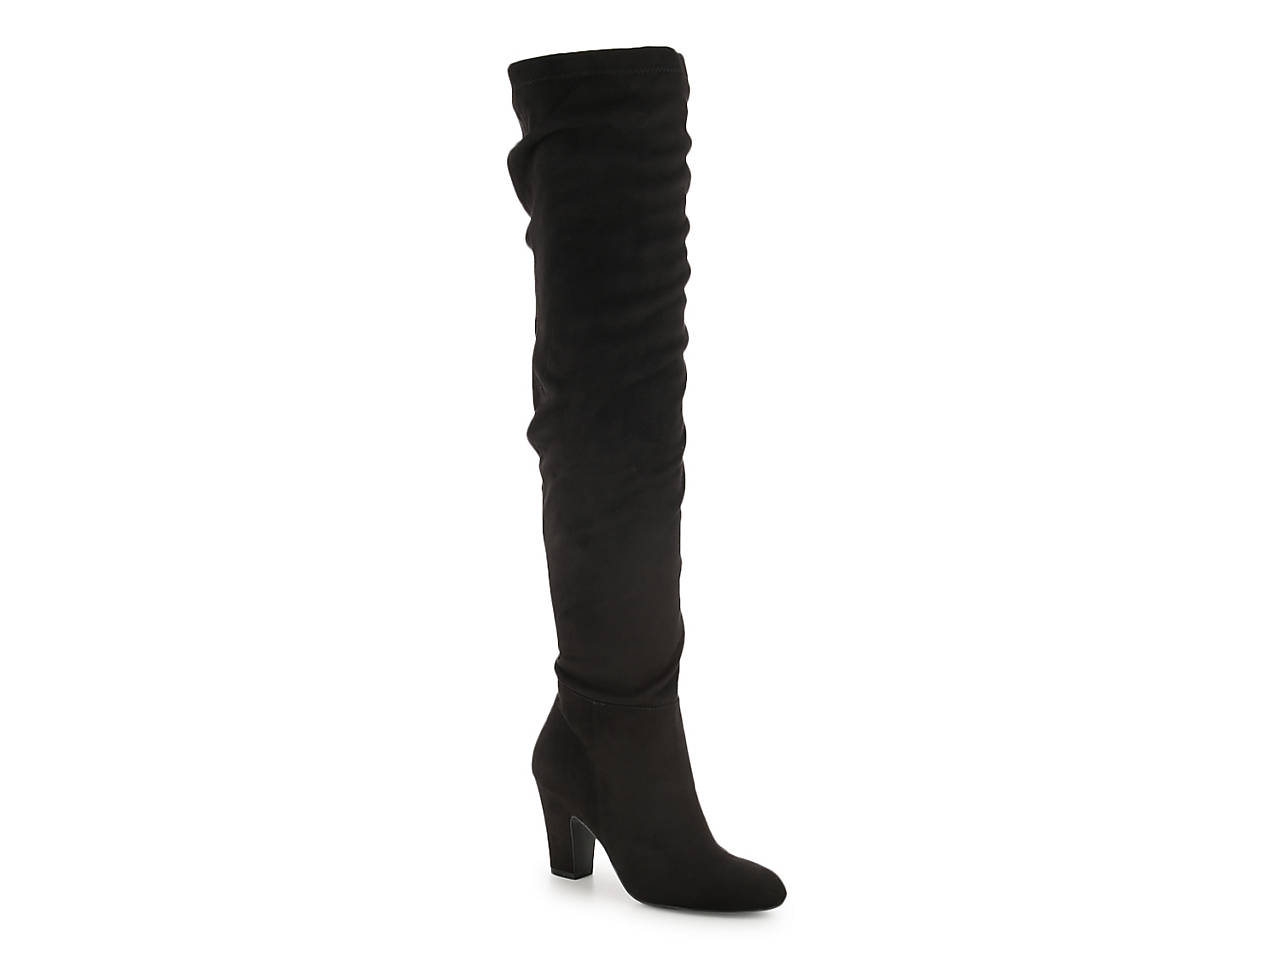 684cf4373ae2 Chinese Laundry Bailey Over The Knee Boot Women s Shoes